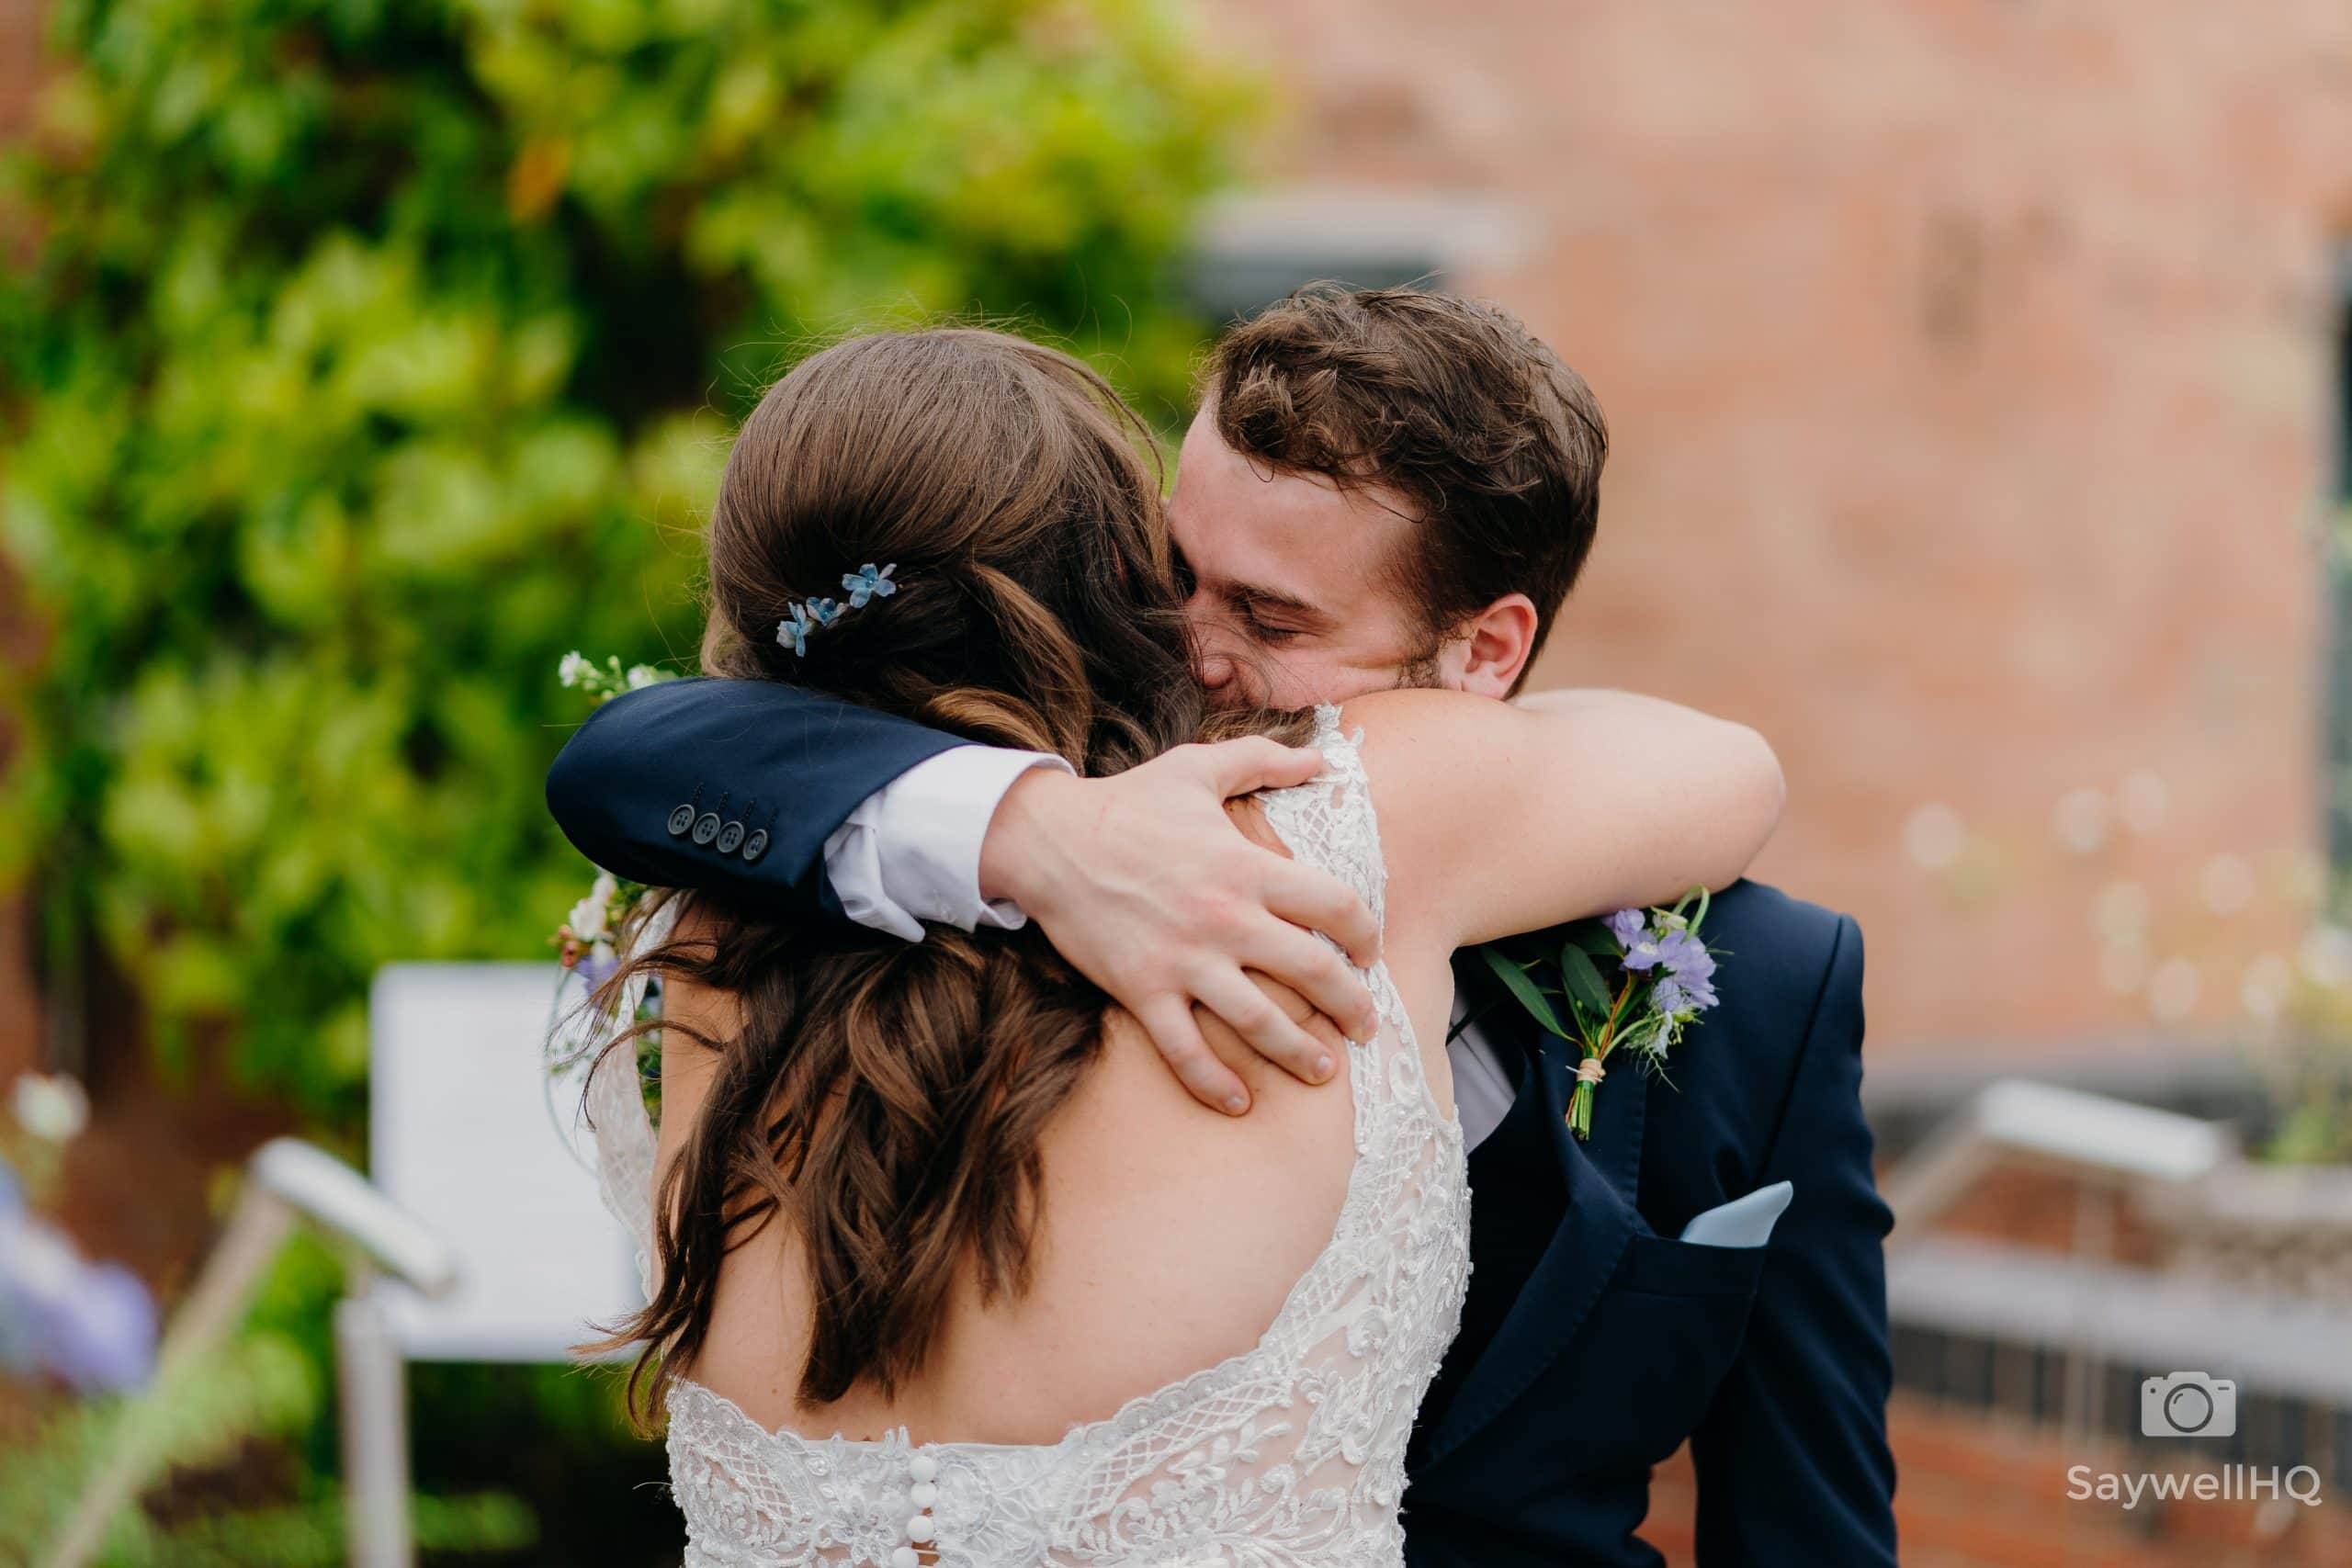 bride and her son hug after the wedding ceremony at Goosedale during the COVID wedding restrictions